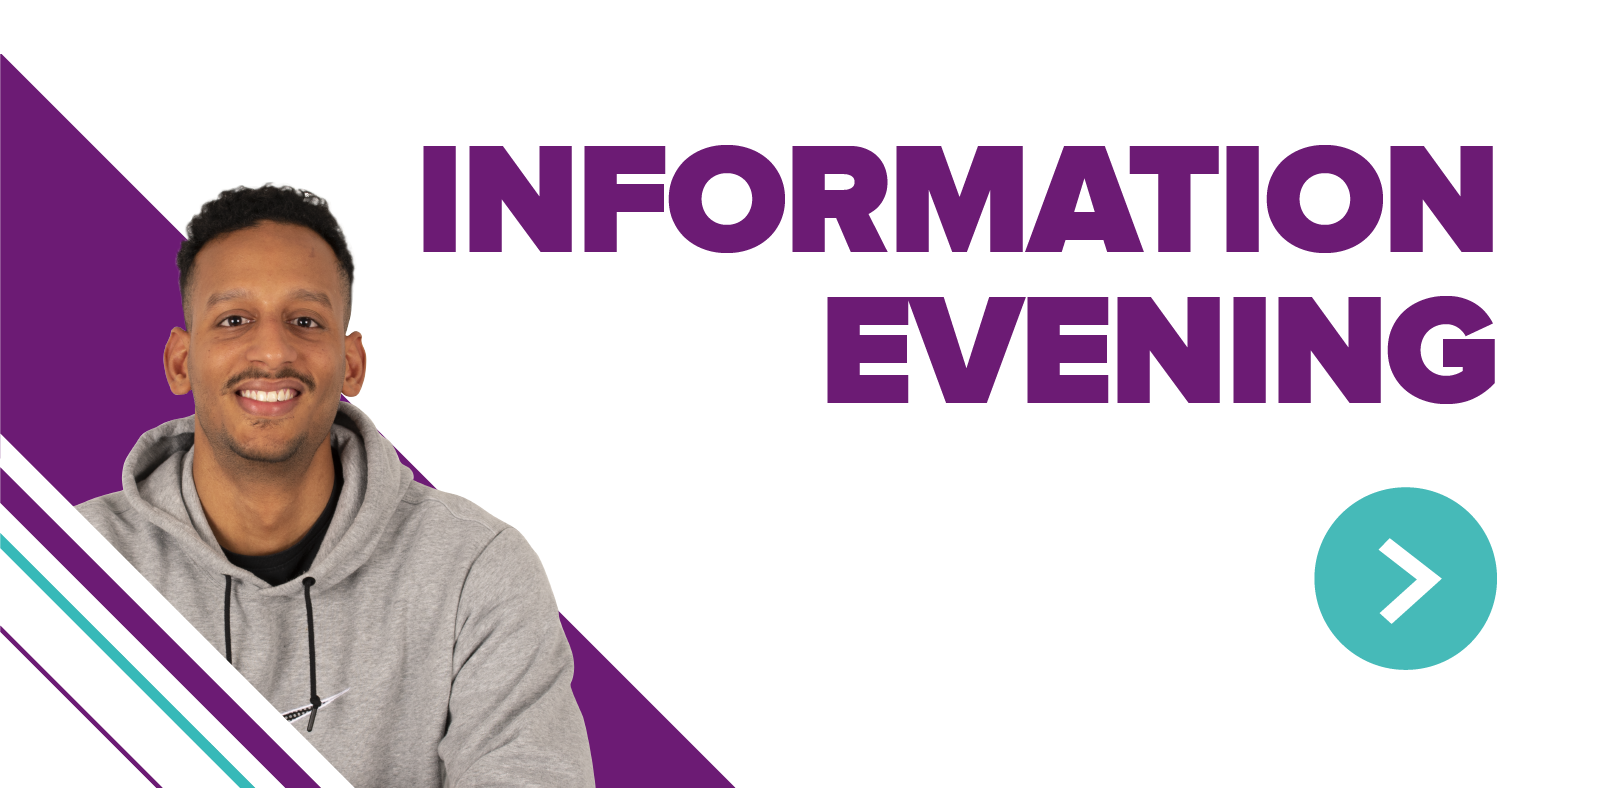 Information Evening<BR>Wednesday 14th August 2019